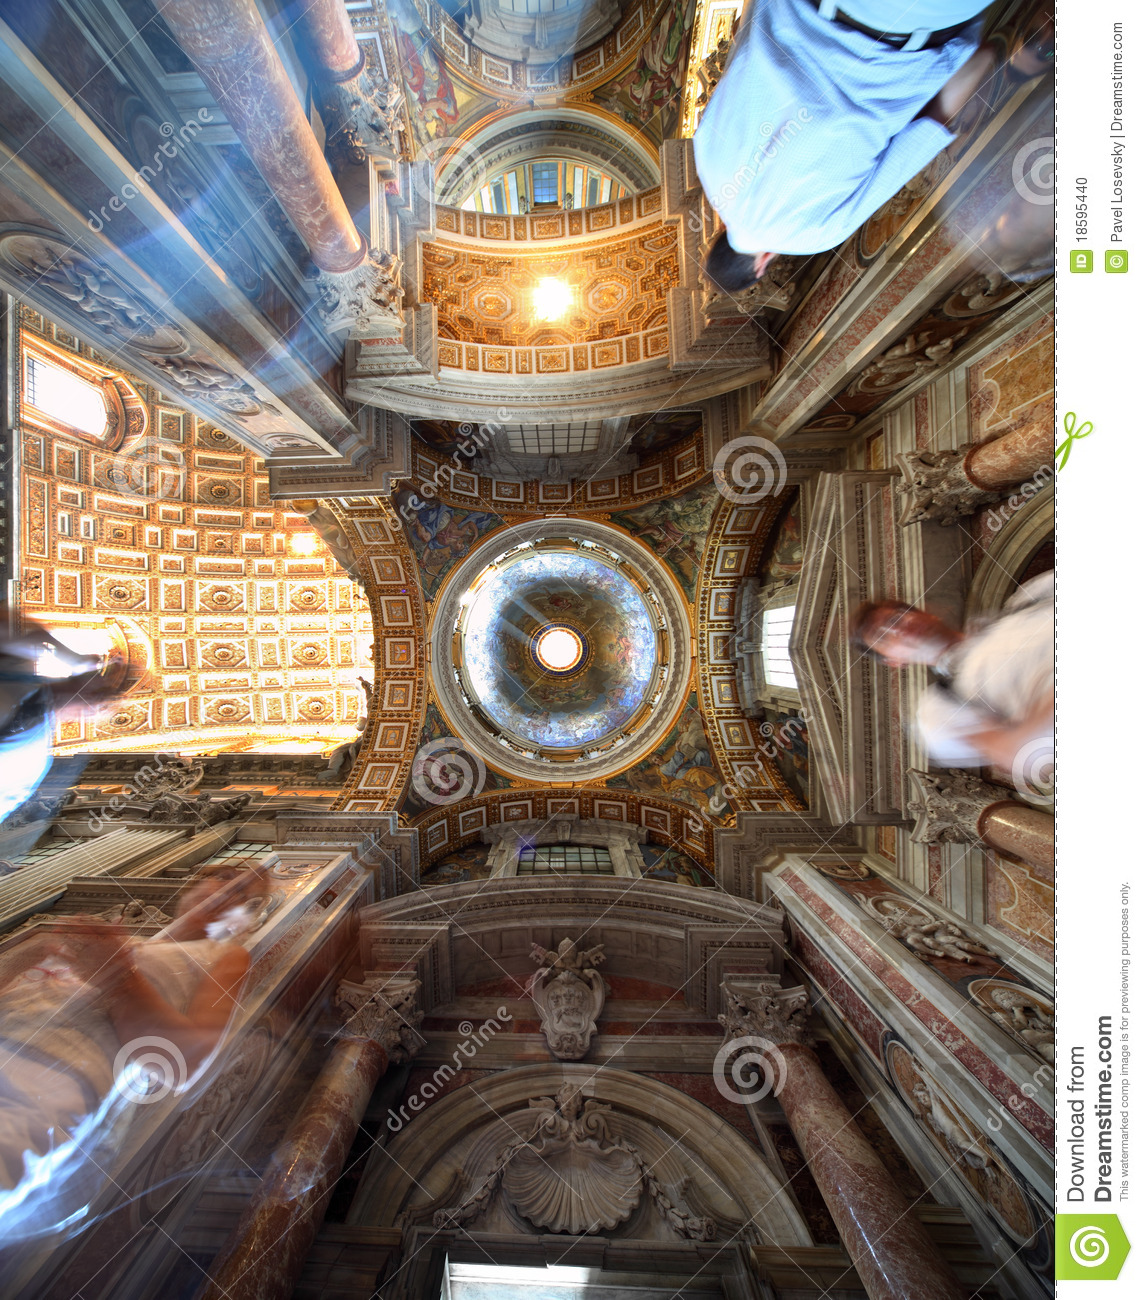 Painted dome in Papal Basilica of Saint Mary Major